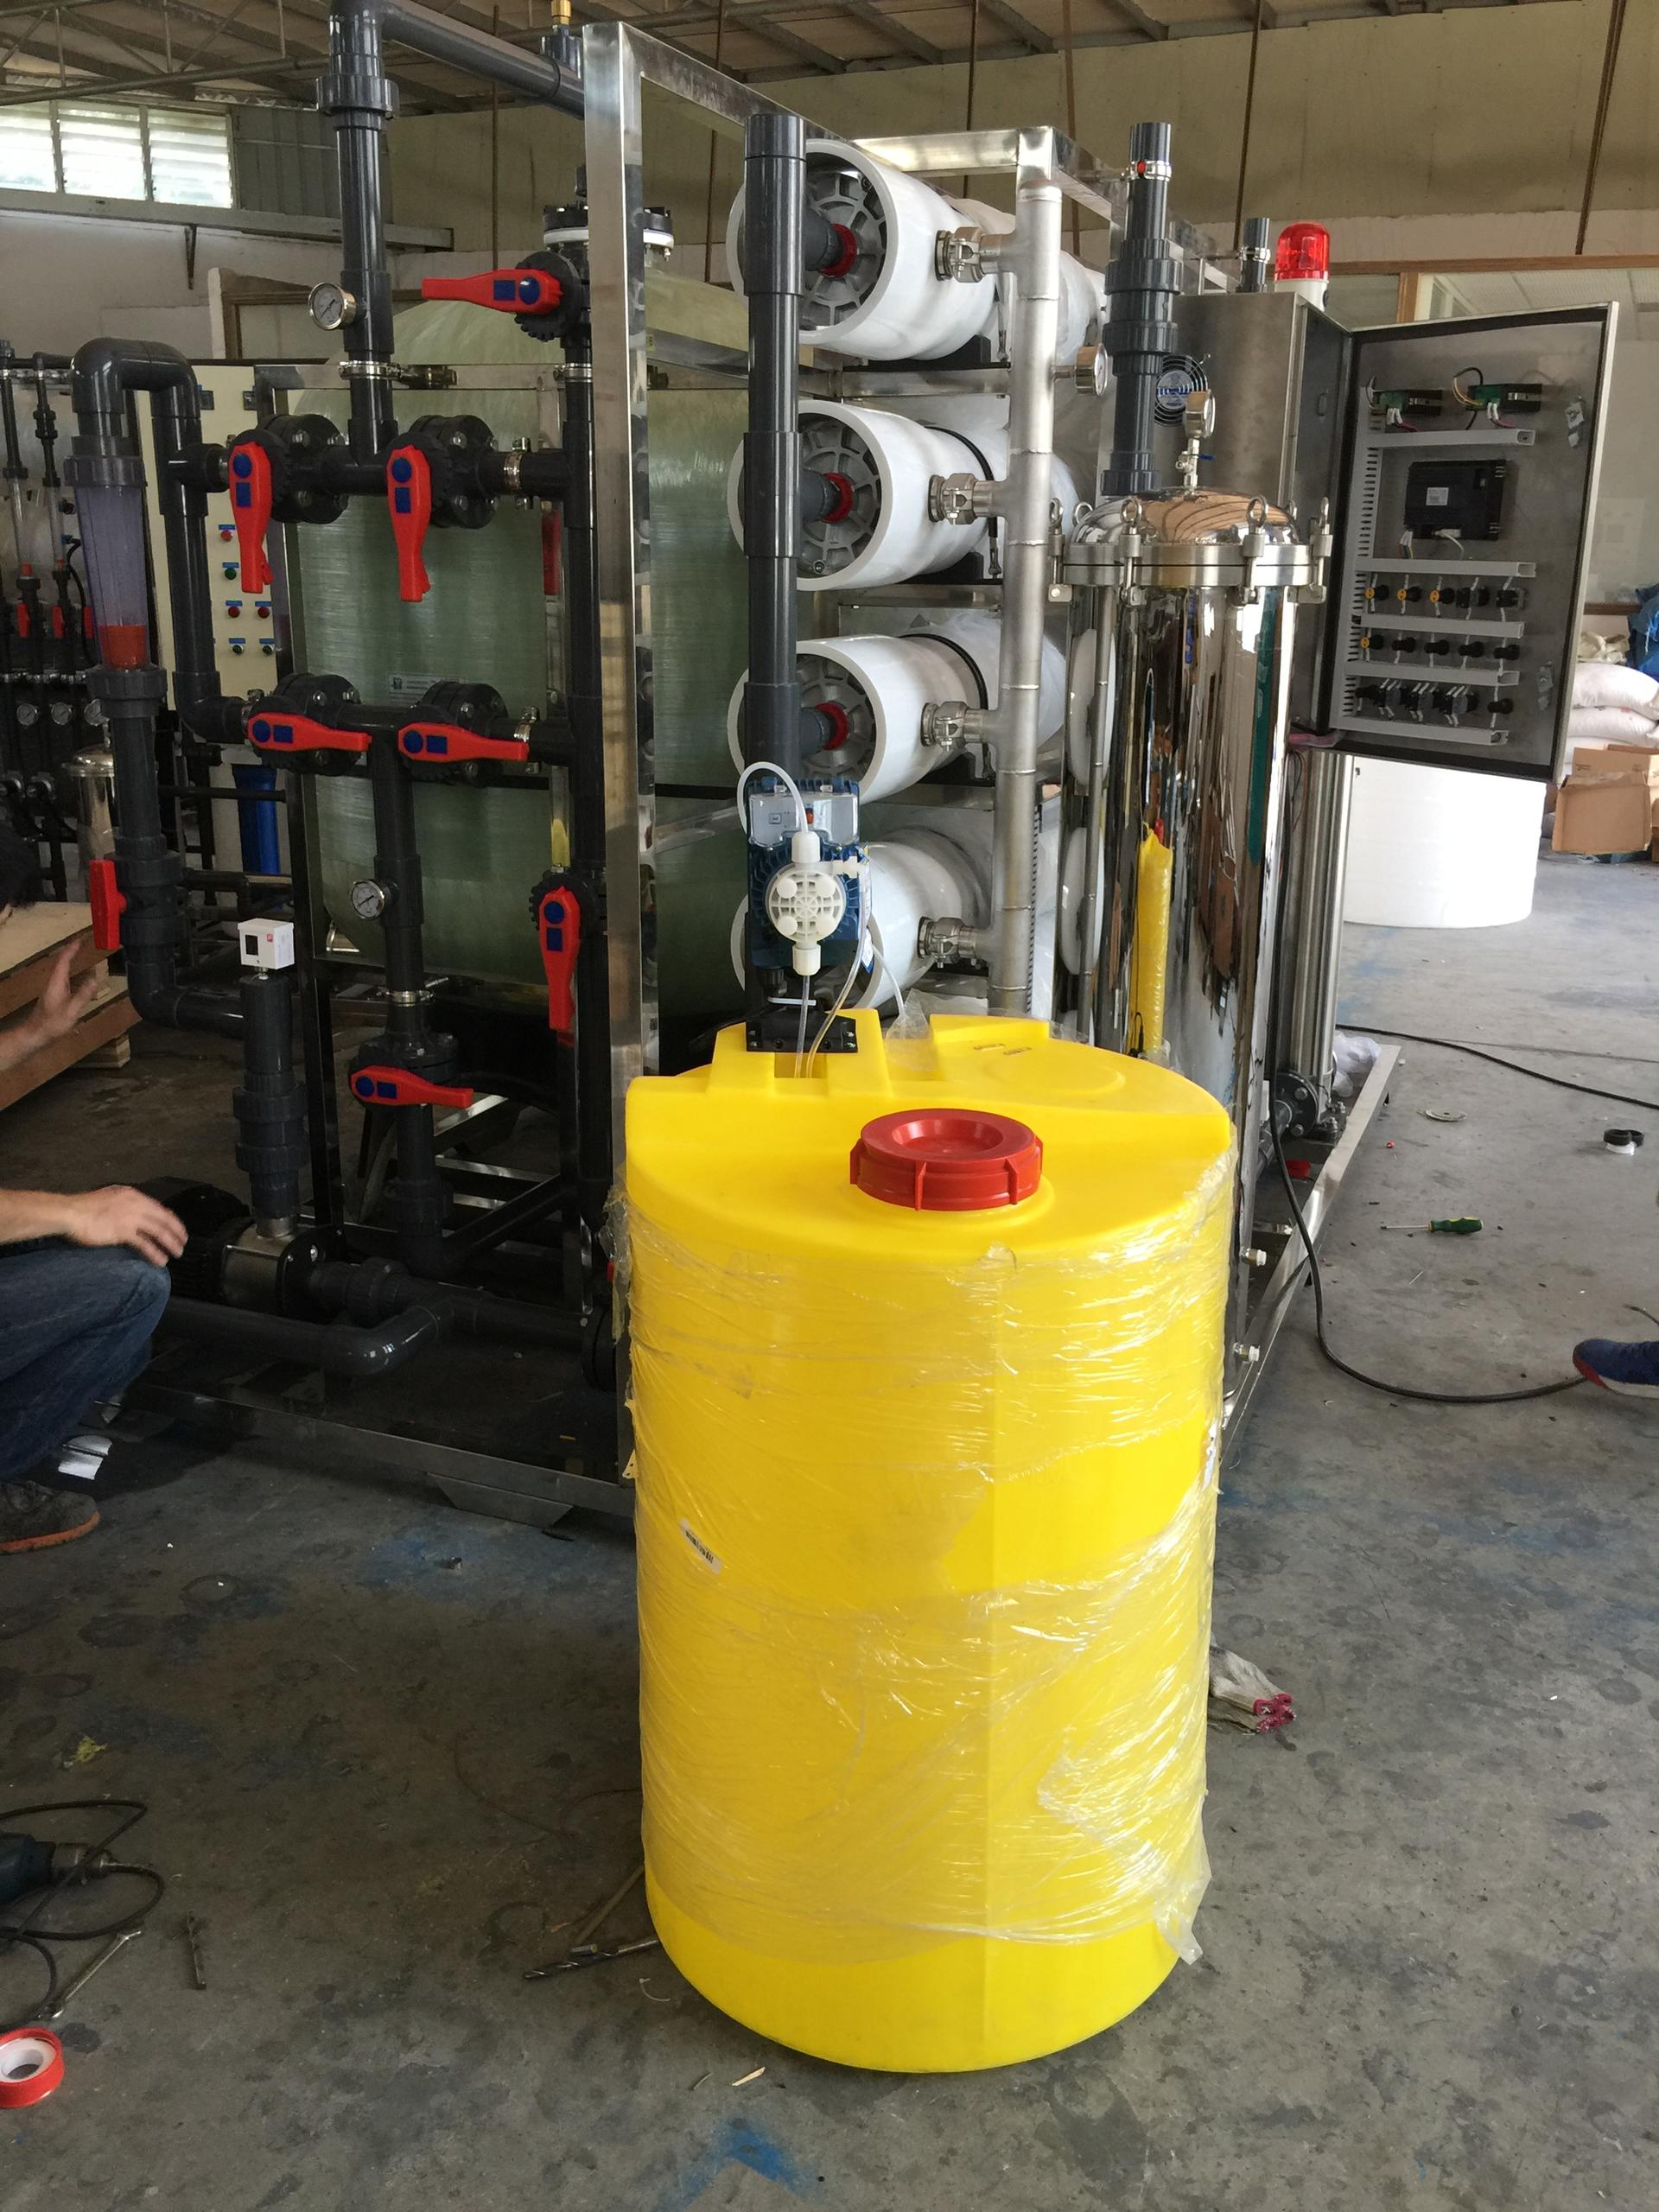 filter supplies with industrial ro system and water purification filter